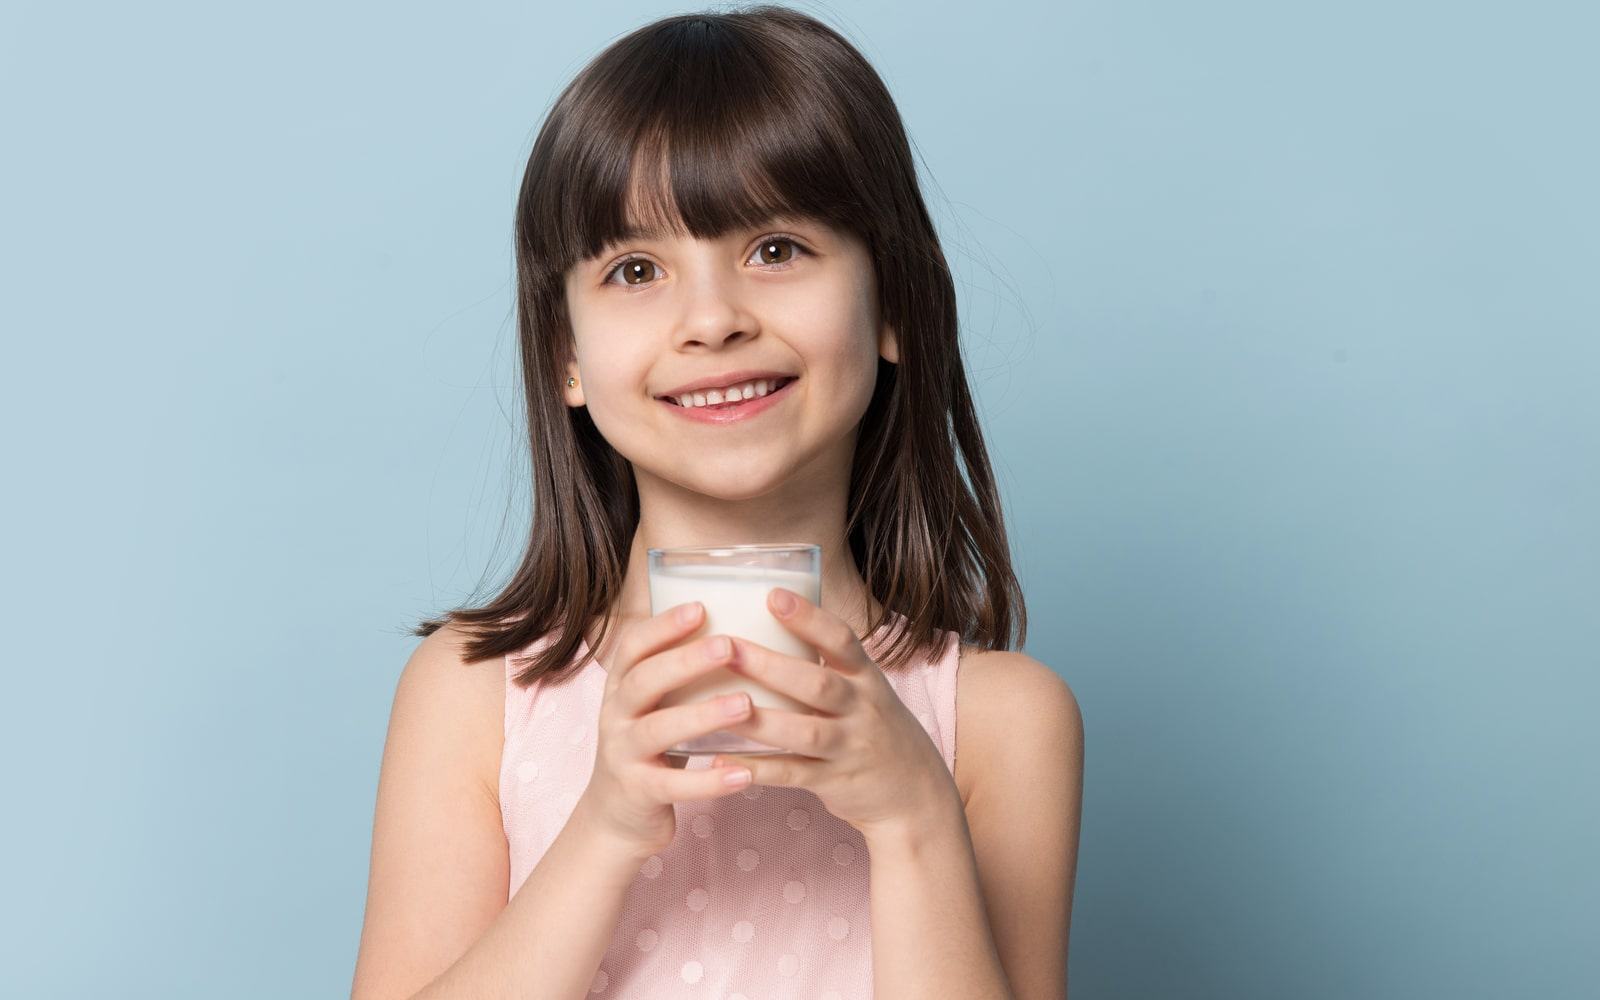 Smiling child holding glass of milk